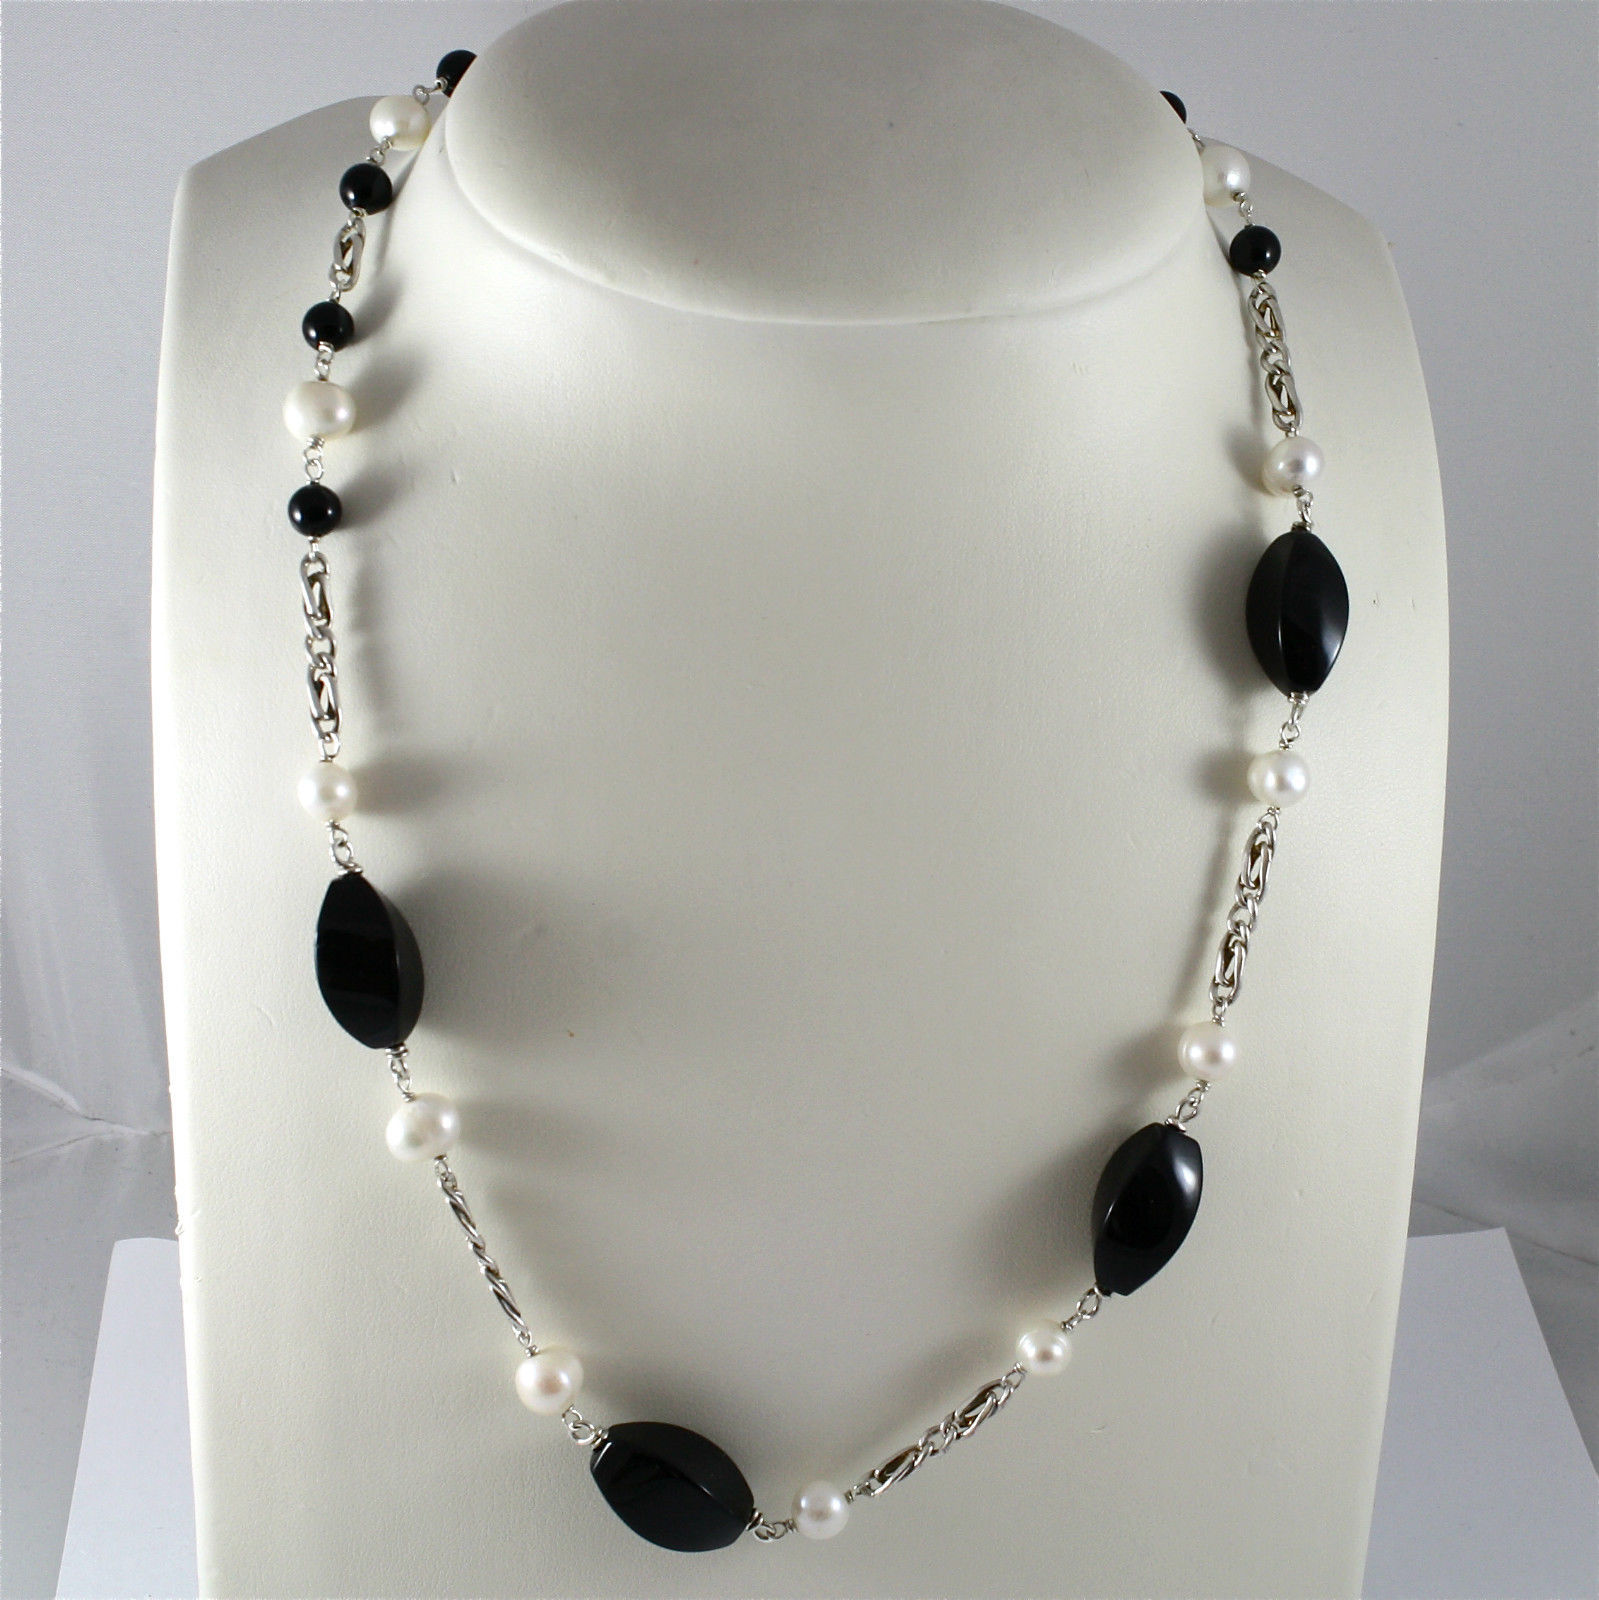 925 Silver Necklace Rhodium, Onyx Black, White Pearls, wide mesh